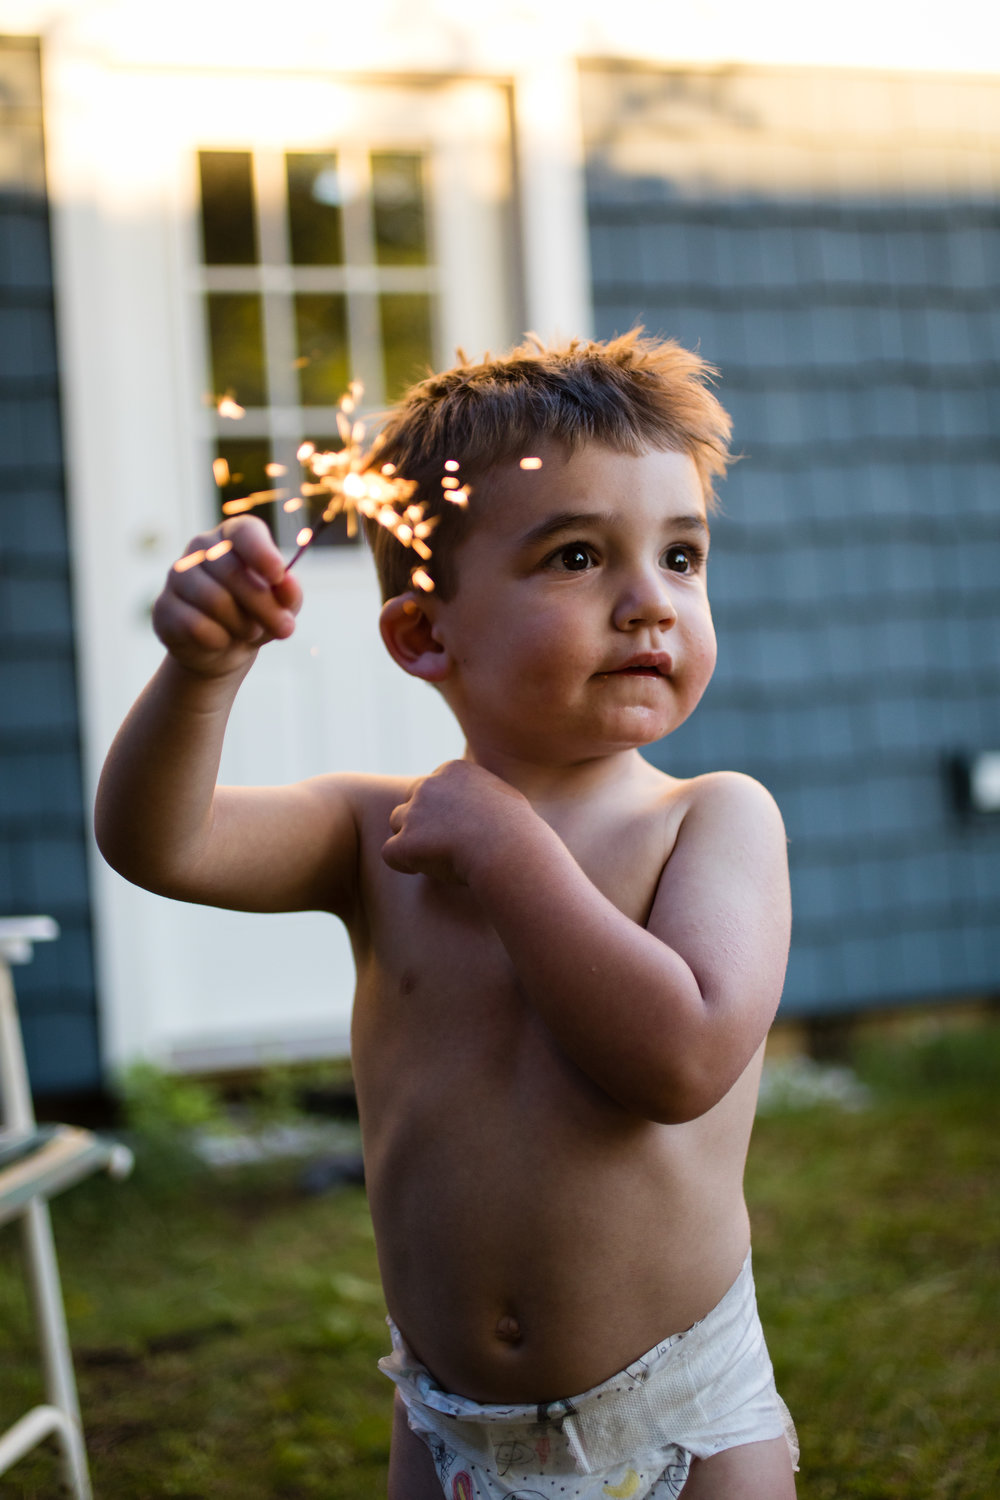 Showing off his safe sparkler holding.